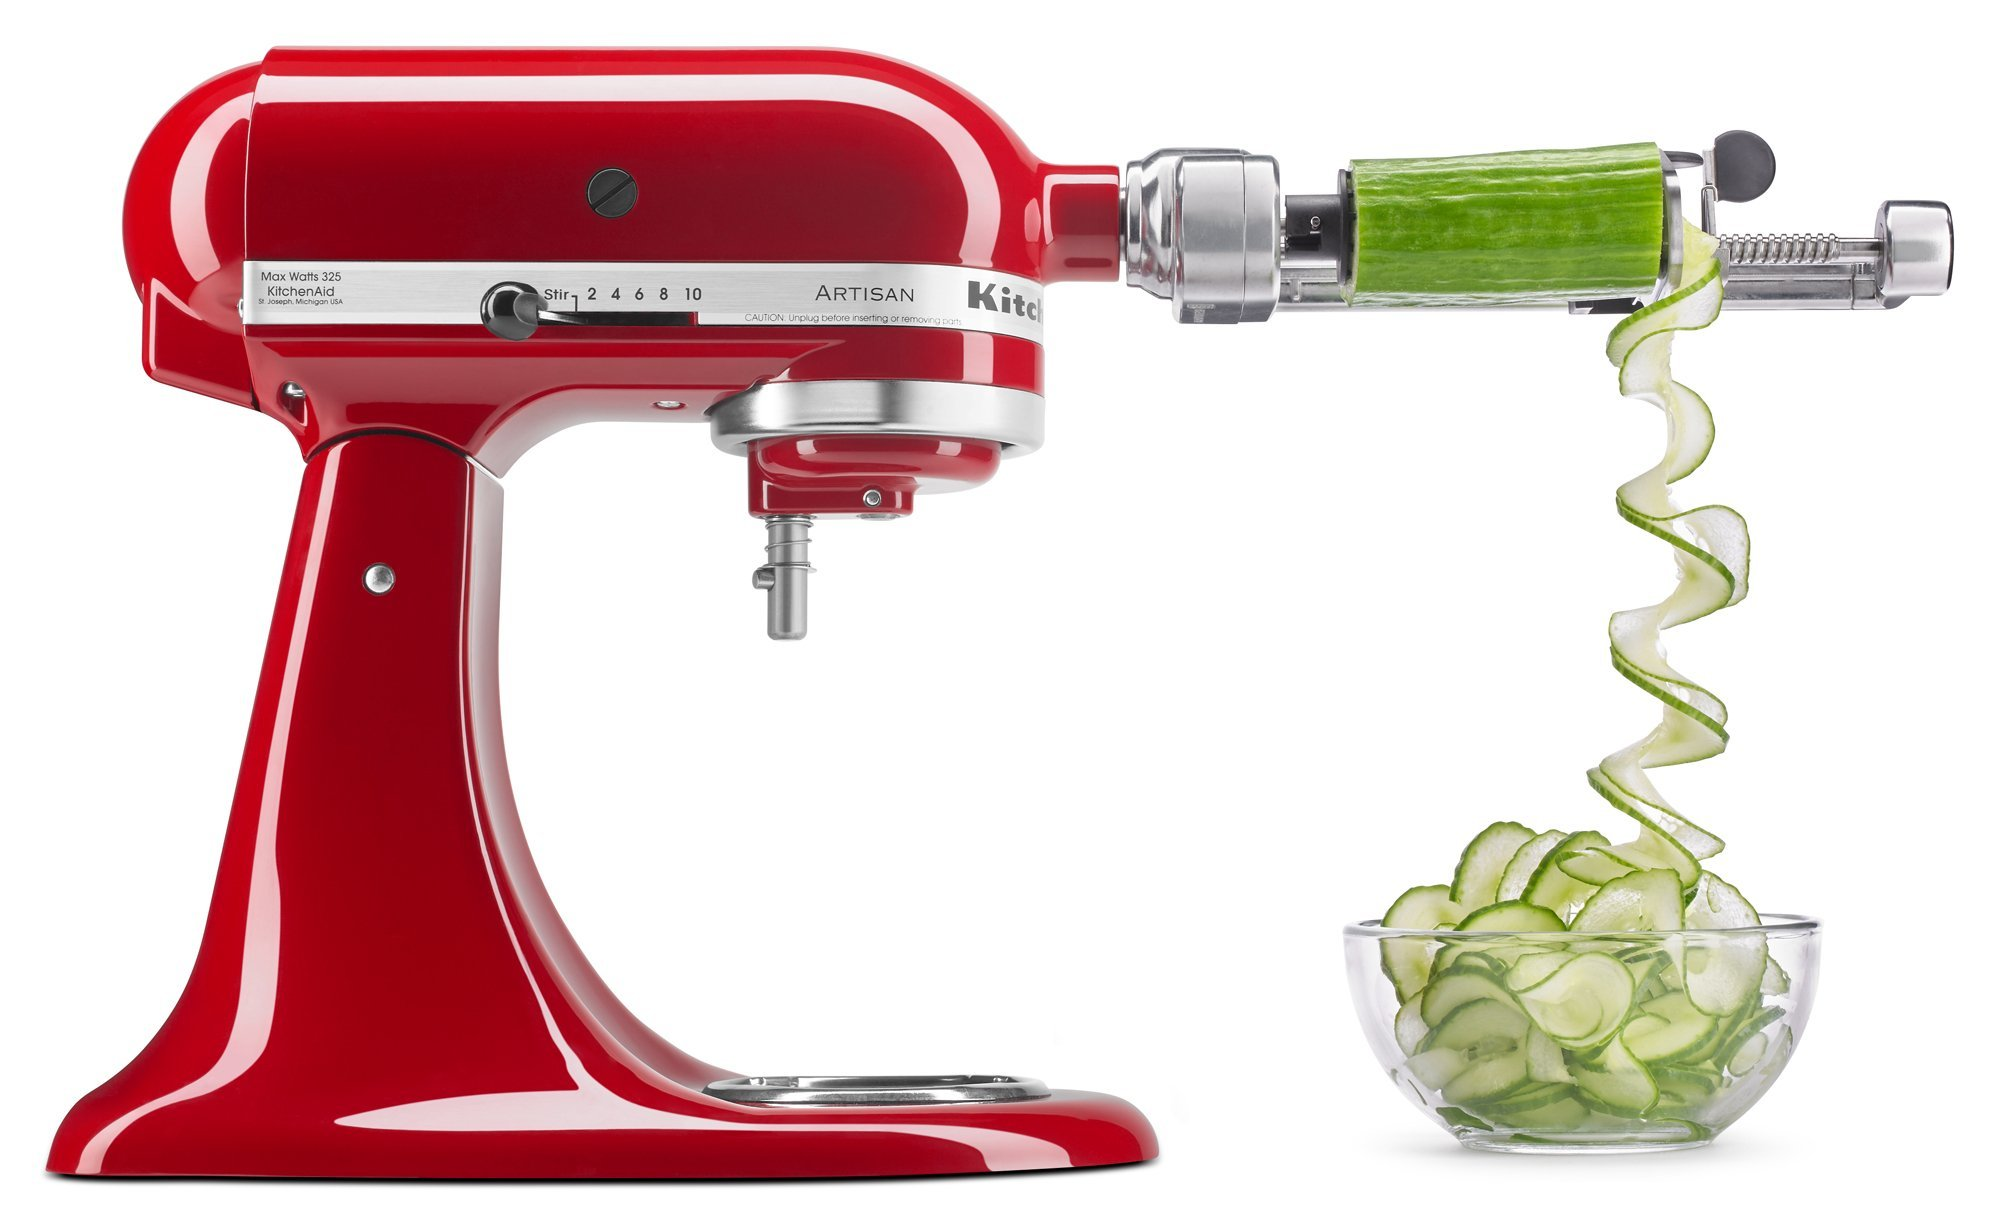 KitchenAid KSM1APC Spiralizer Attachment with Peel, Core and Slice by KitchenAid